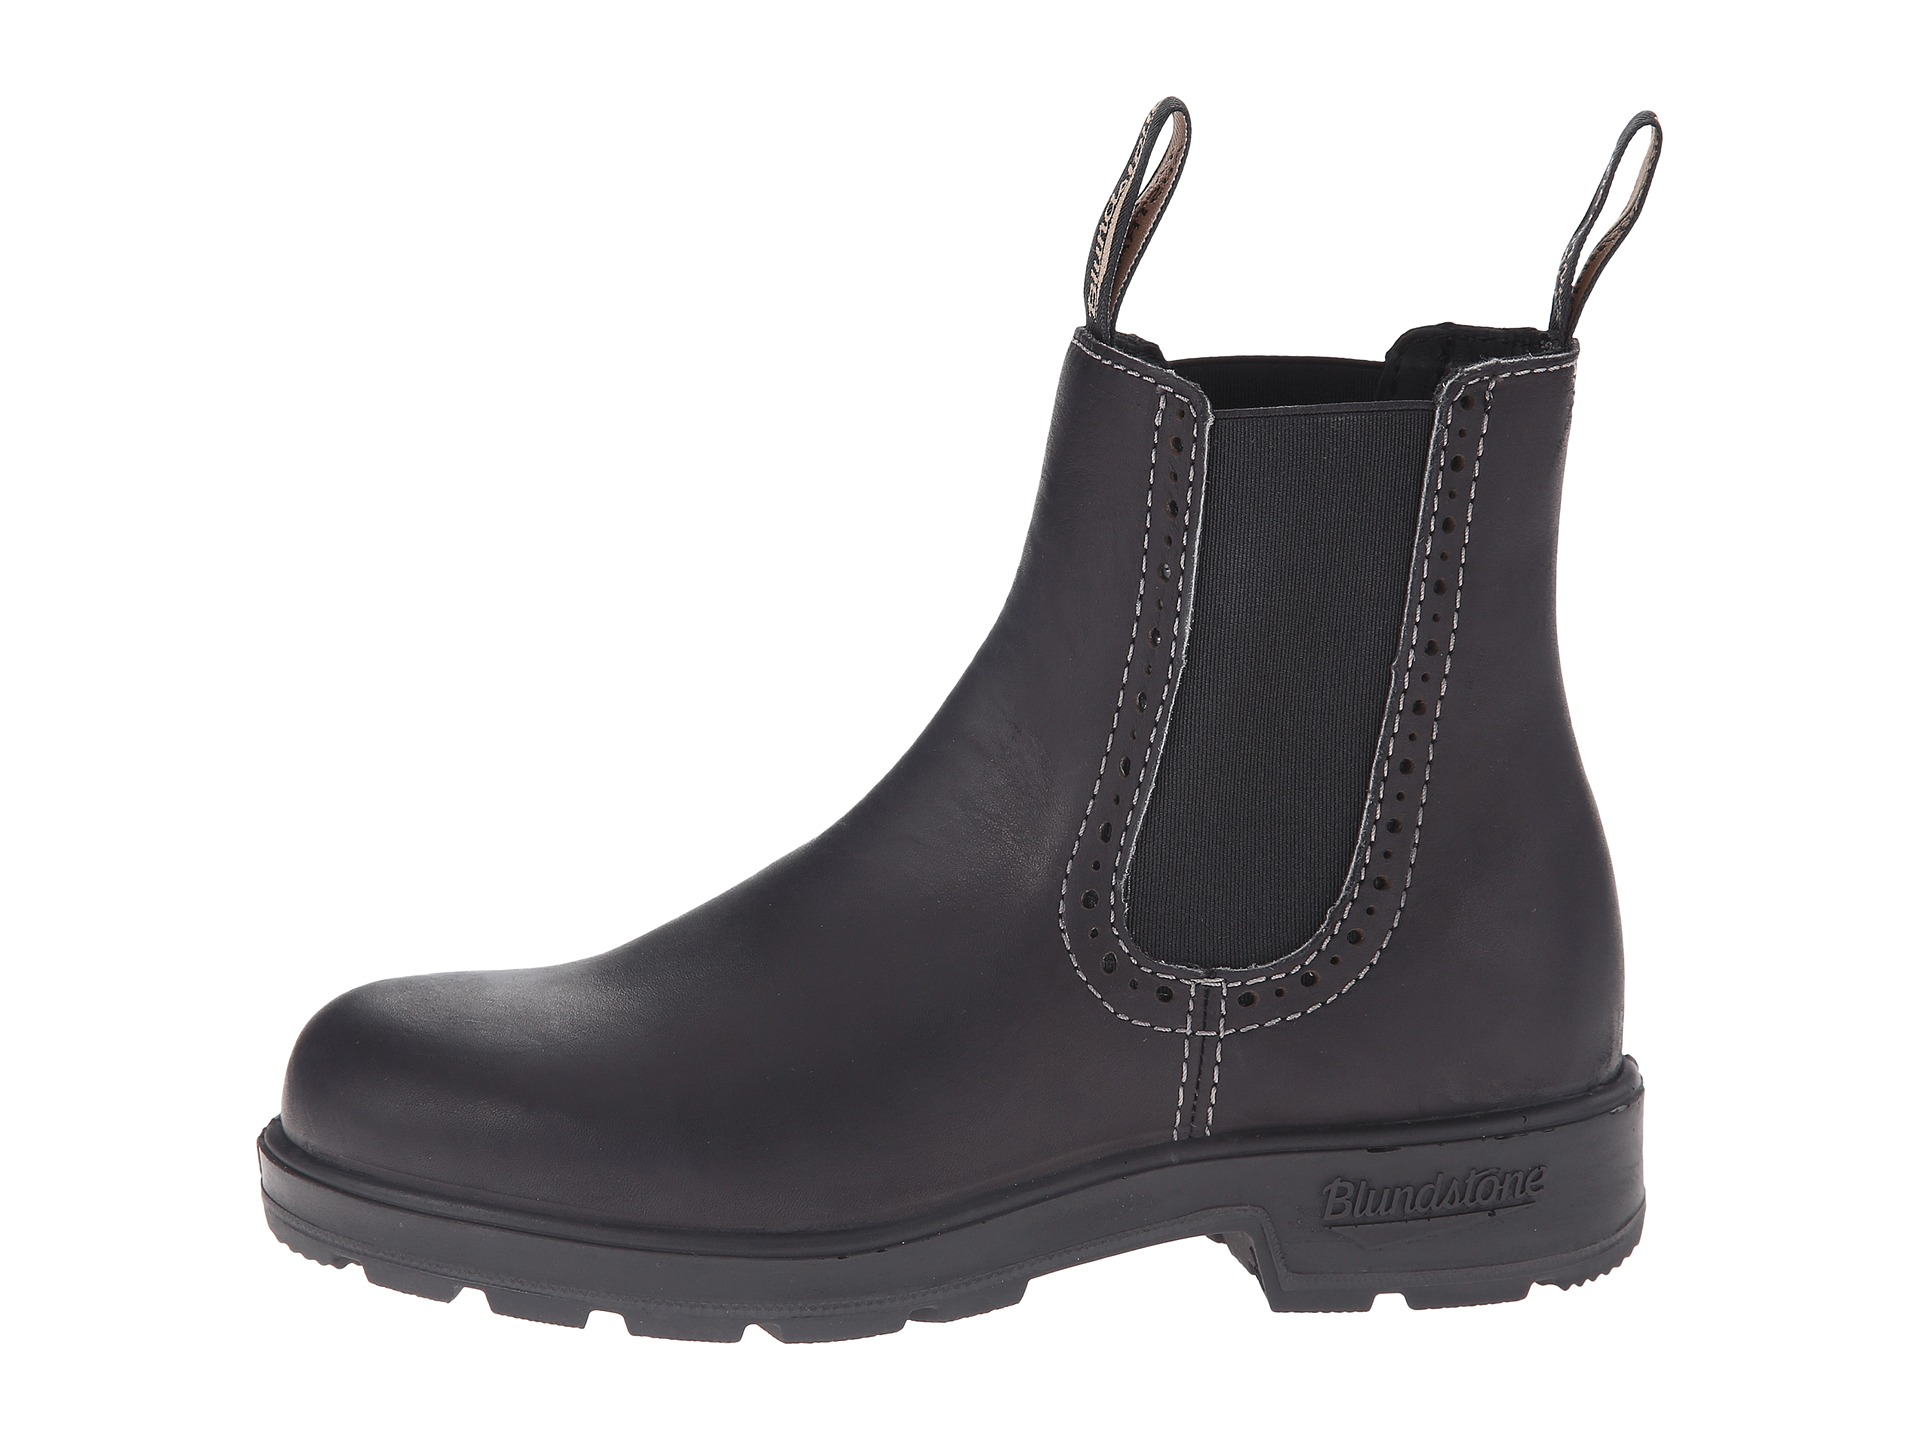 blundstone bl1448 at zappos